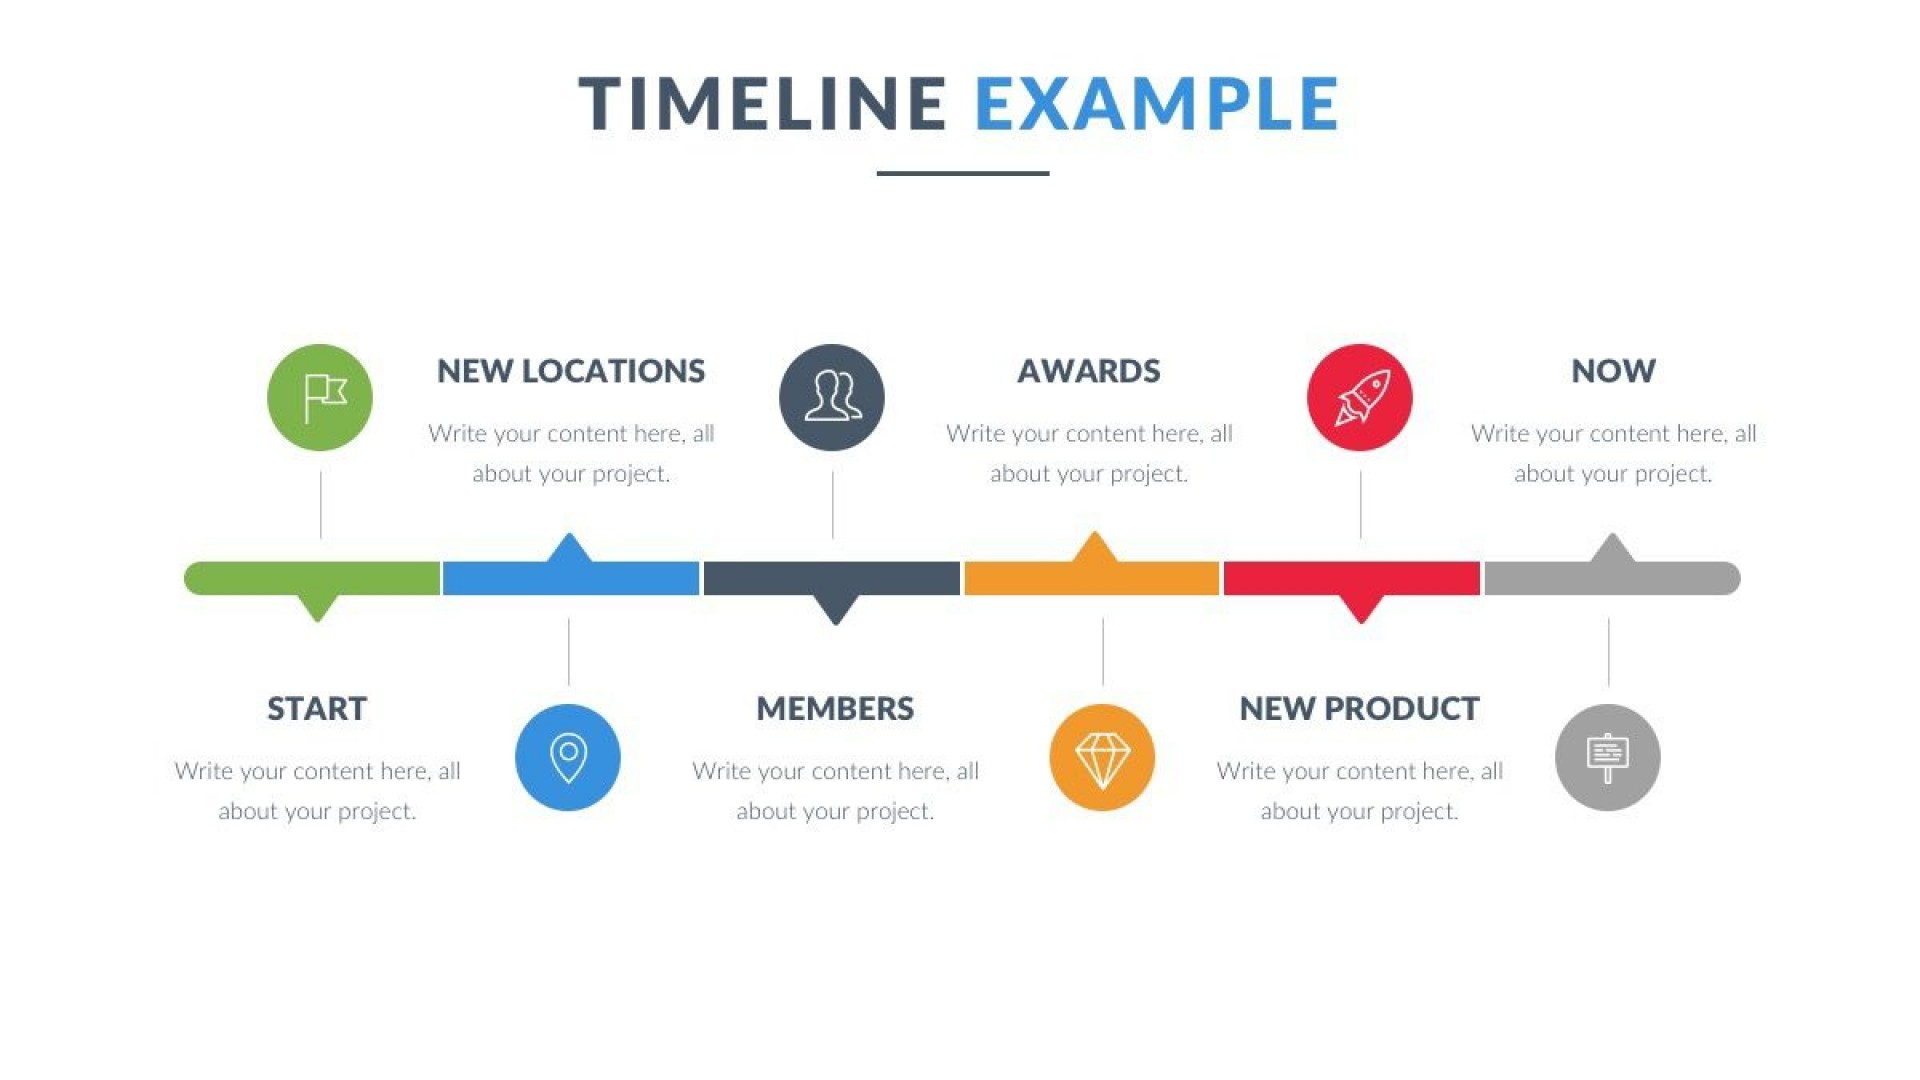 007 Awesome Timeline Template For Presentation Picture  Project Example Presentationgo1920